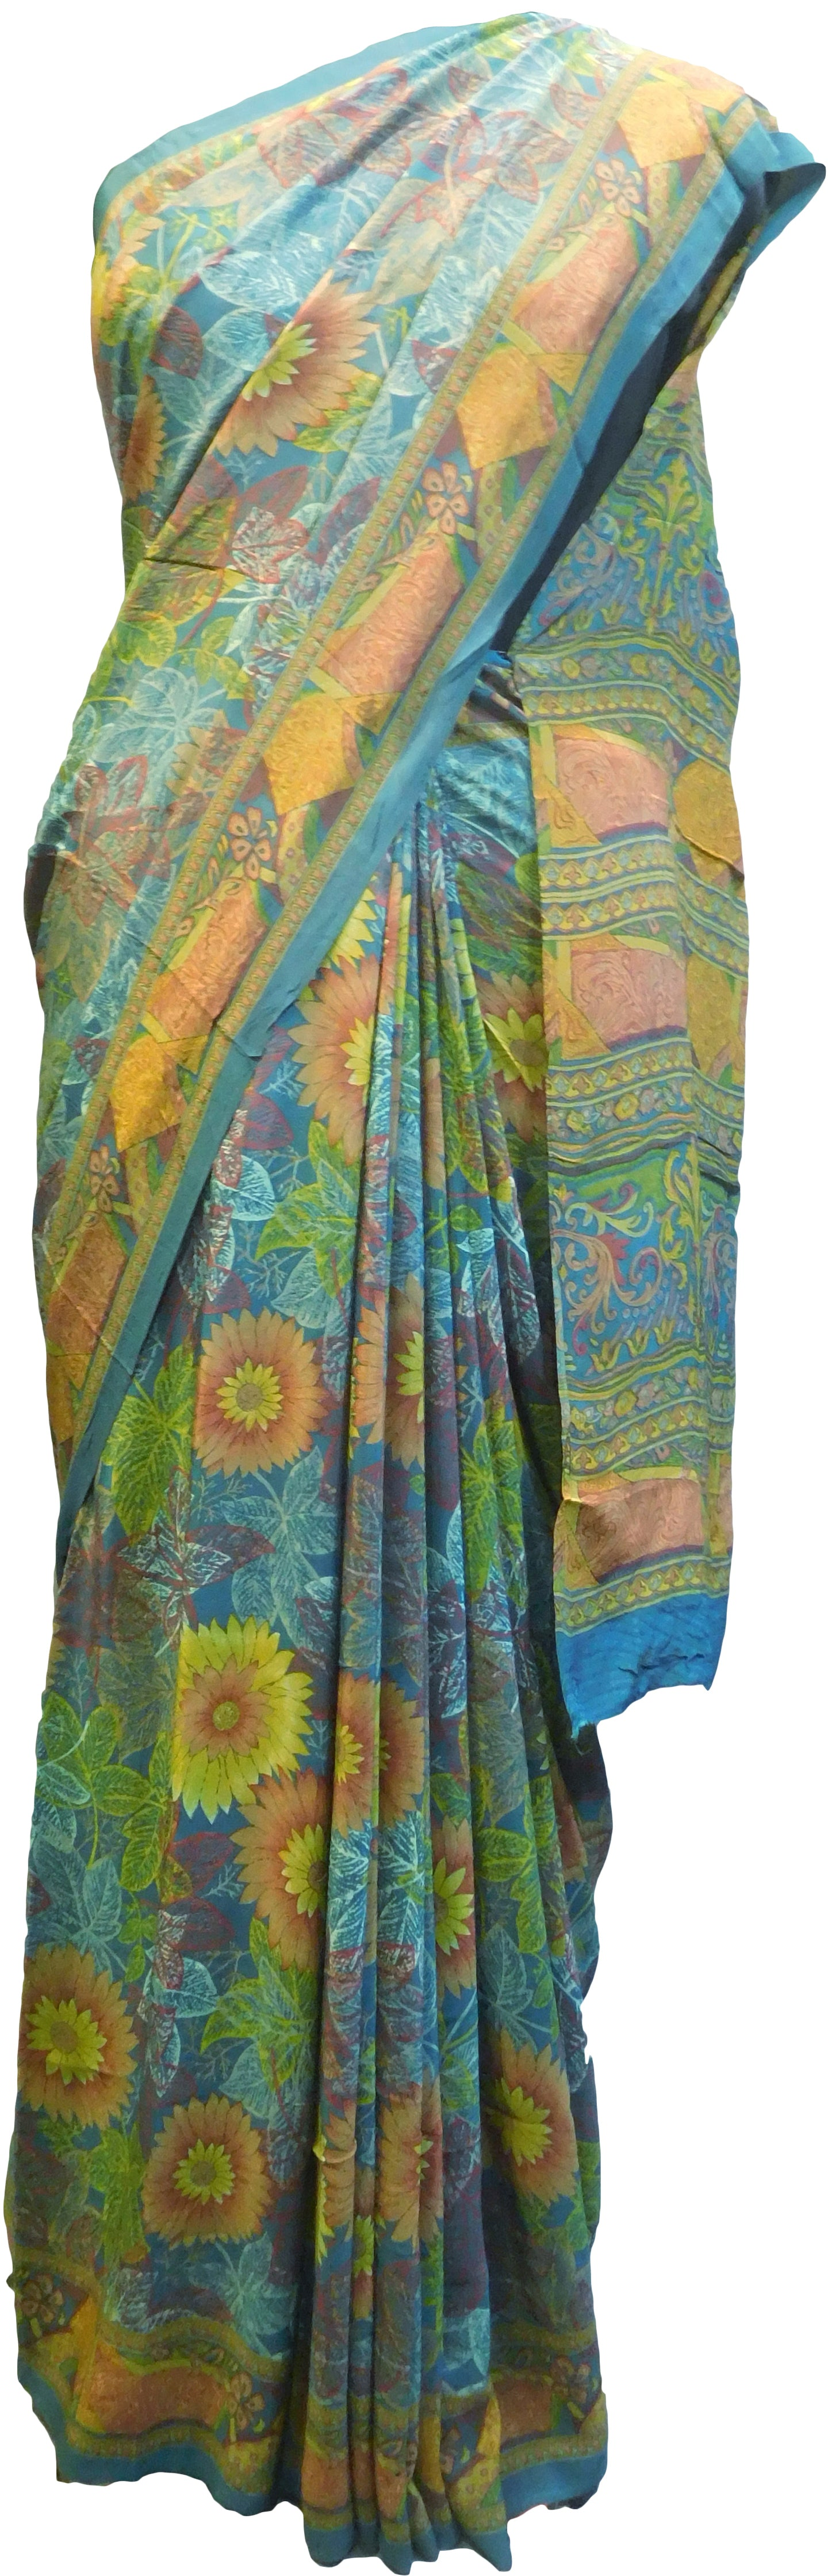 Multicolor Designer Wedding Partywear Pure Crepe Hand Brush Reprinted Kolkata Saree Sari RP268